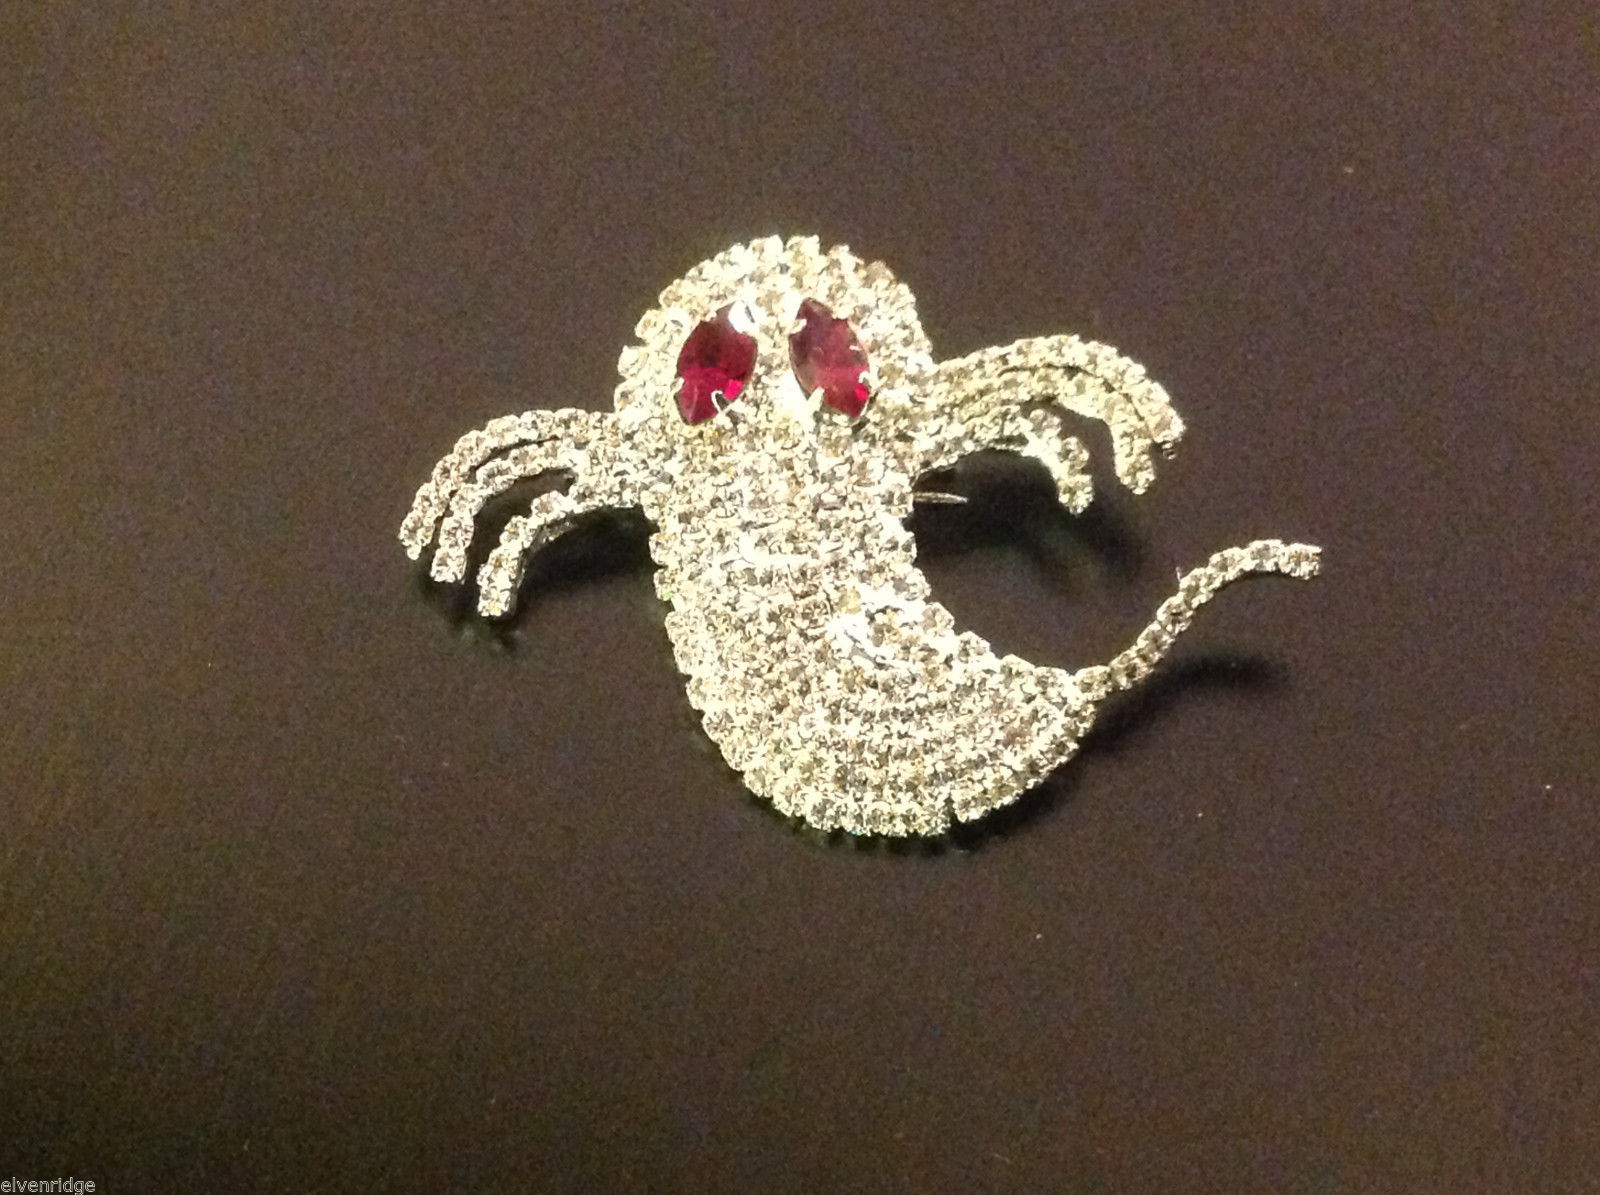 Beautiful sparkly new rhinestone pin with ghost and red eye crystals